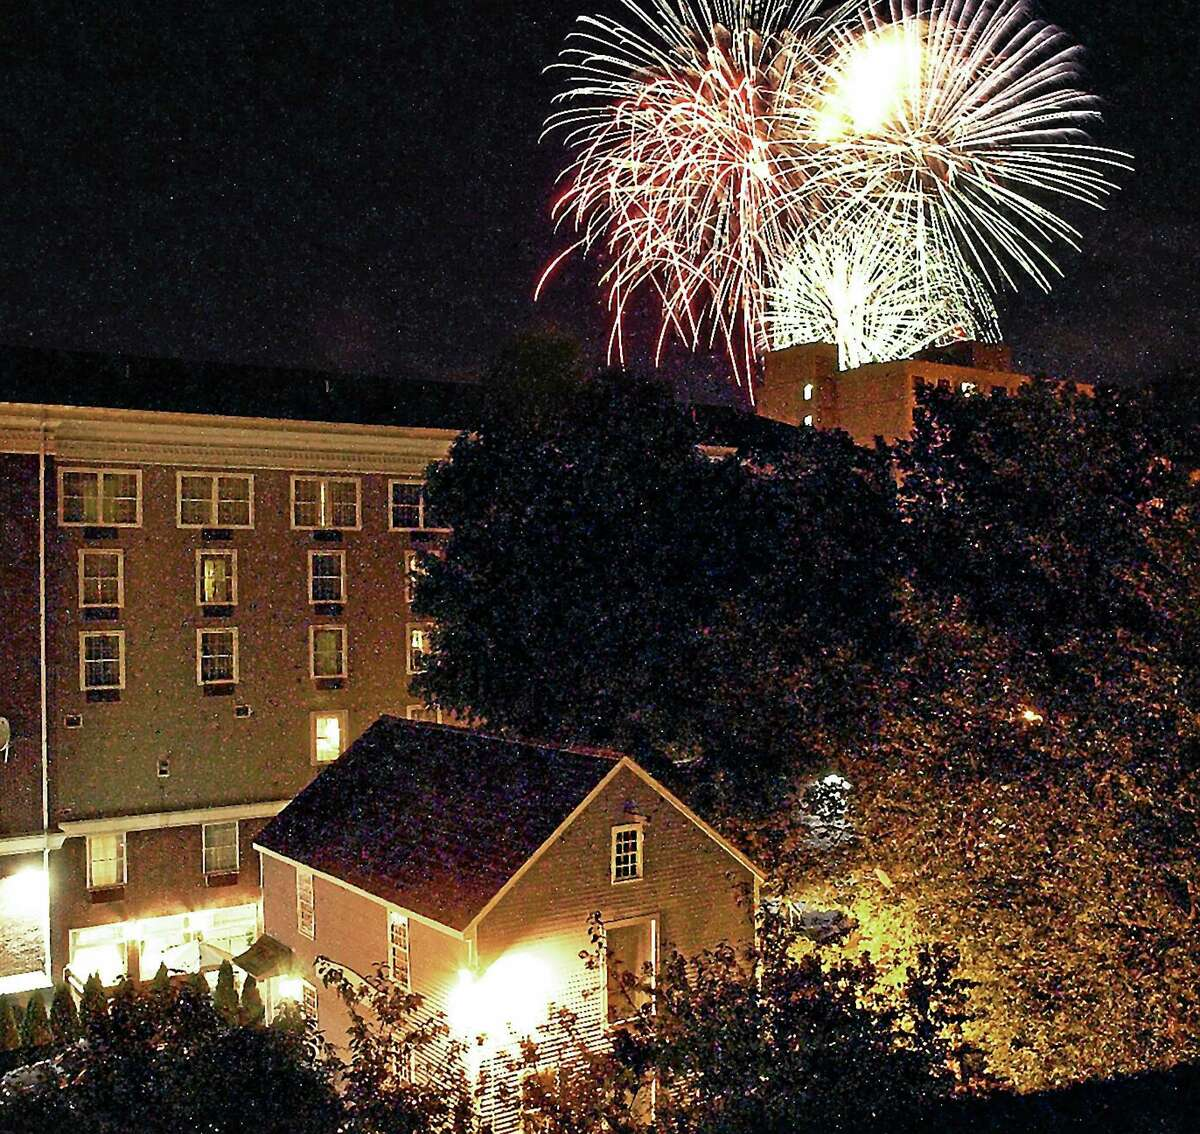 For the finale of the Tastes, Sights & Sounds of Middletown in 2007, fireworks lit up the sky.